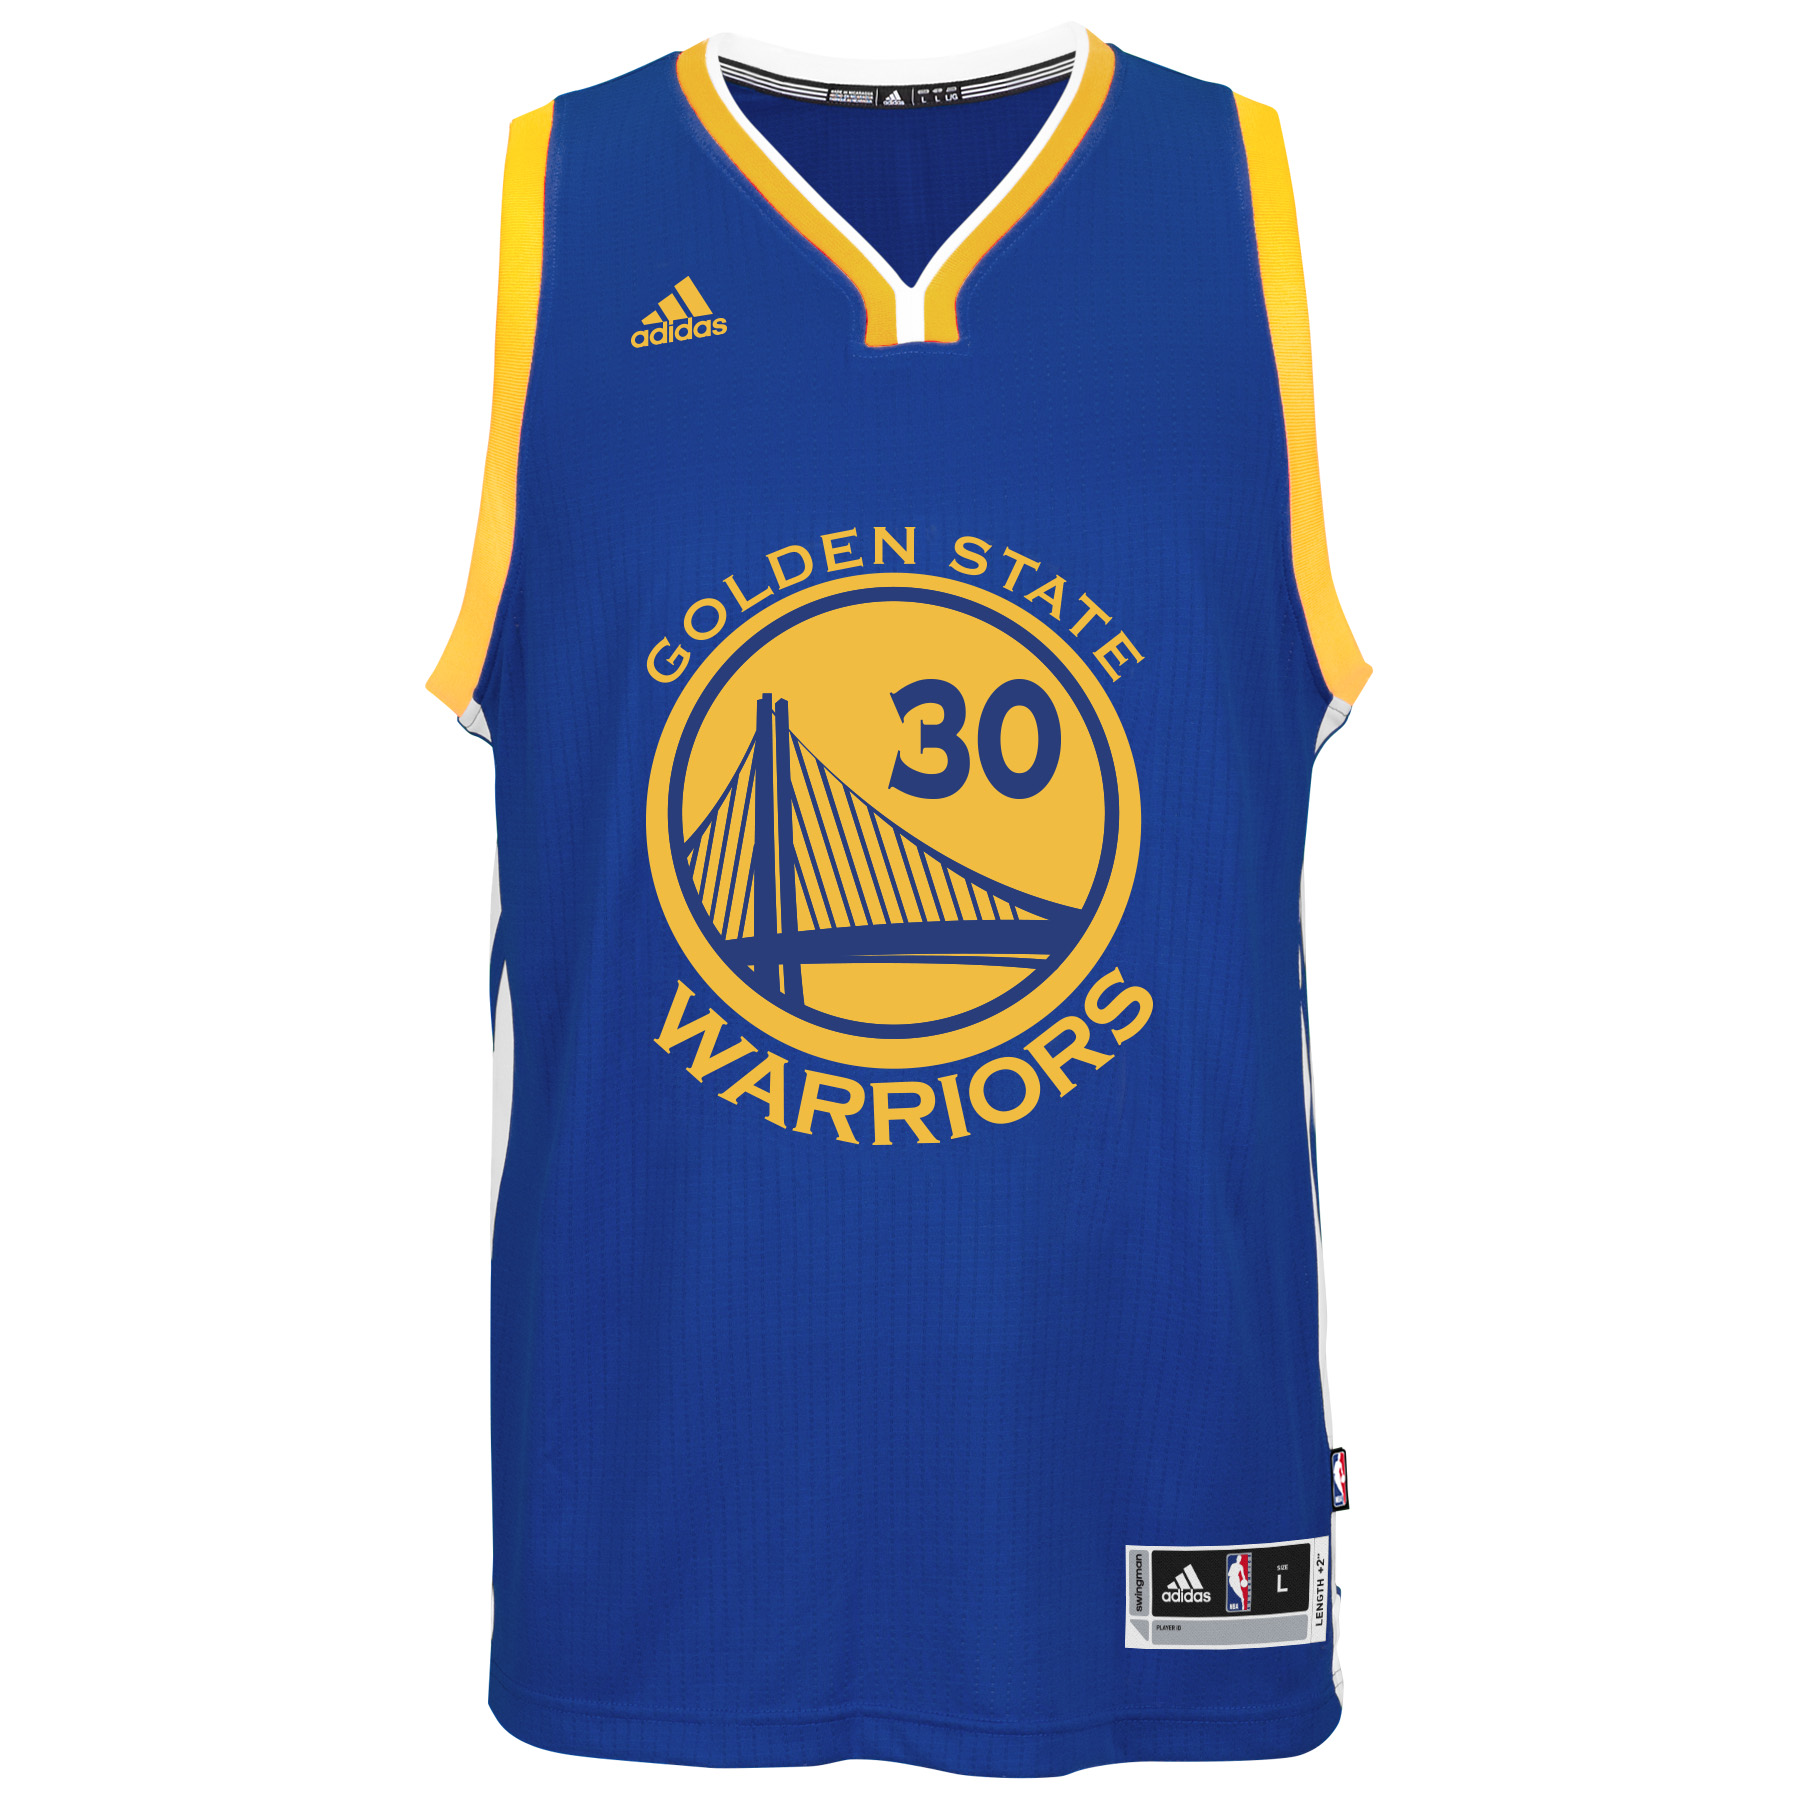 Stephen Curry Golden State Warriors Adidas NBA Swingman Jersey - Blue